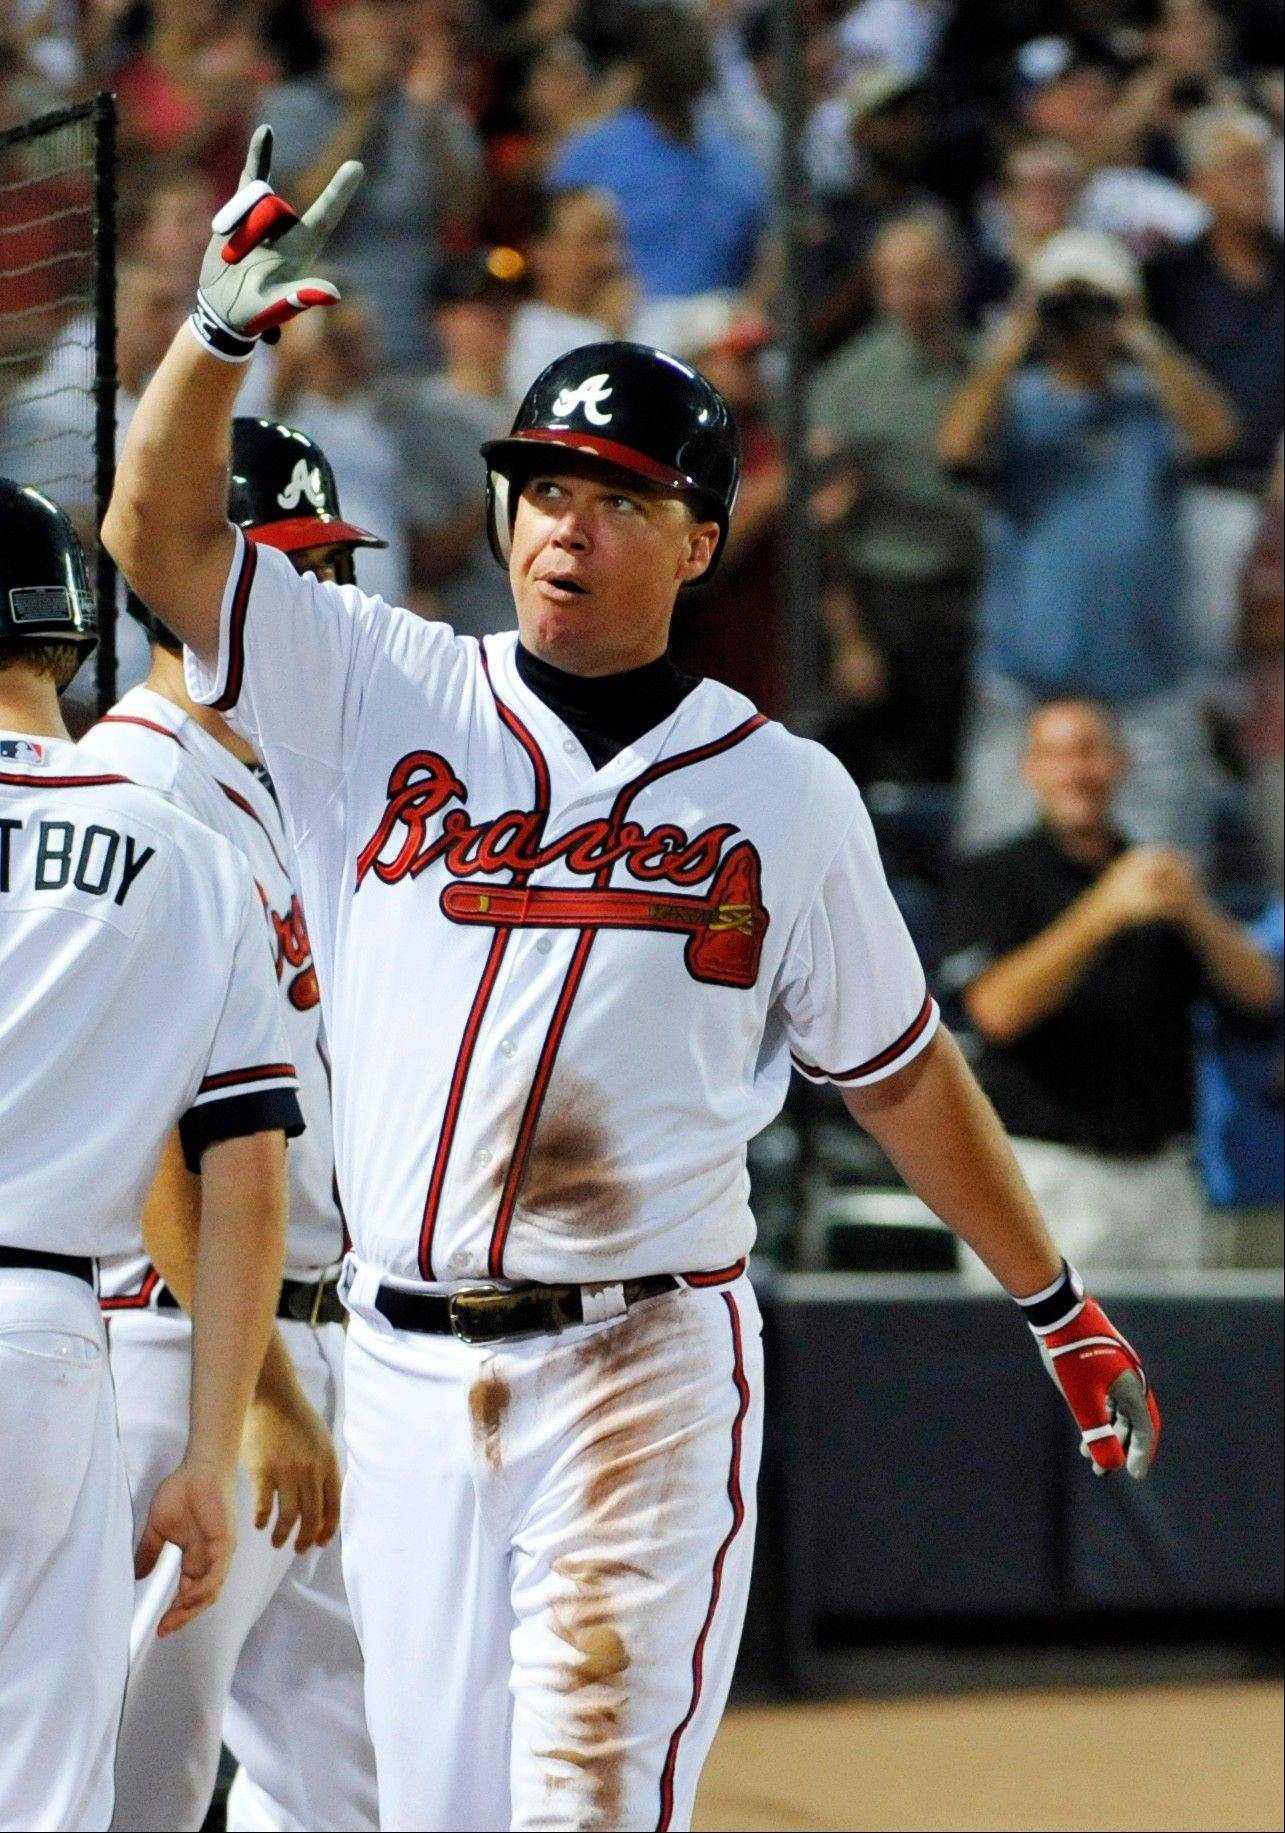 Atlanta's Chipper Jones acknowledges the crowd after hitting a home run Thursday for his 2,700th career hit.